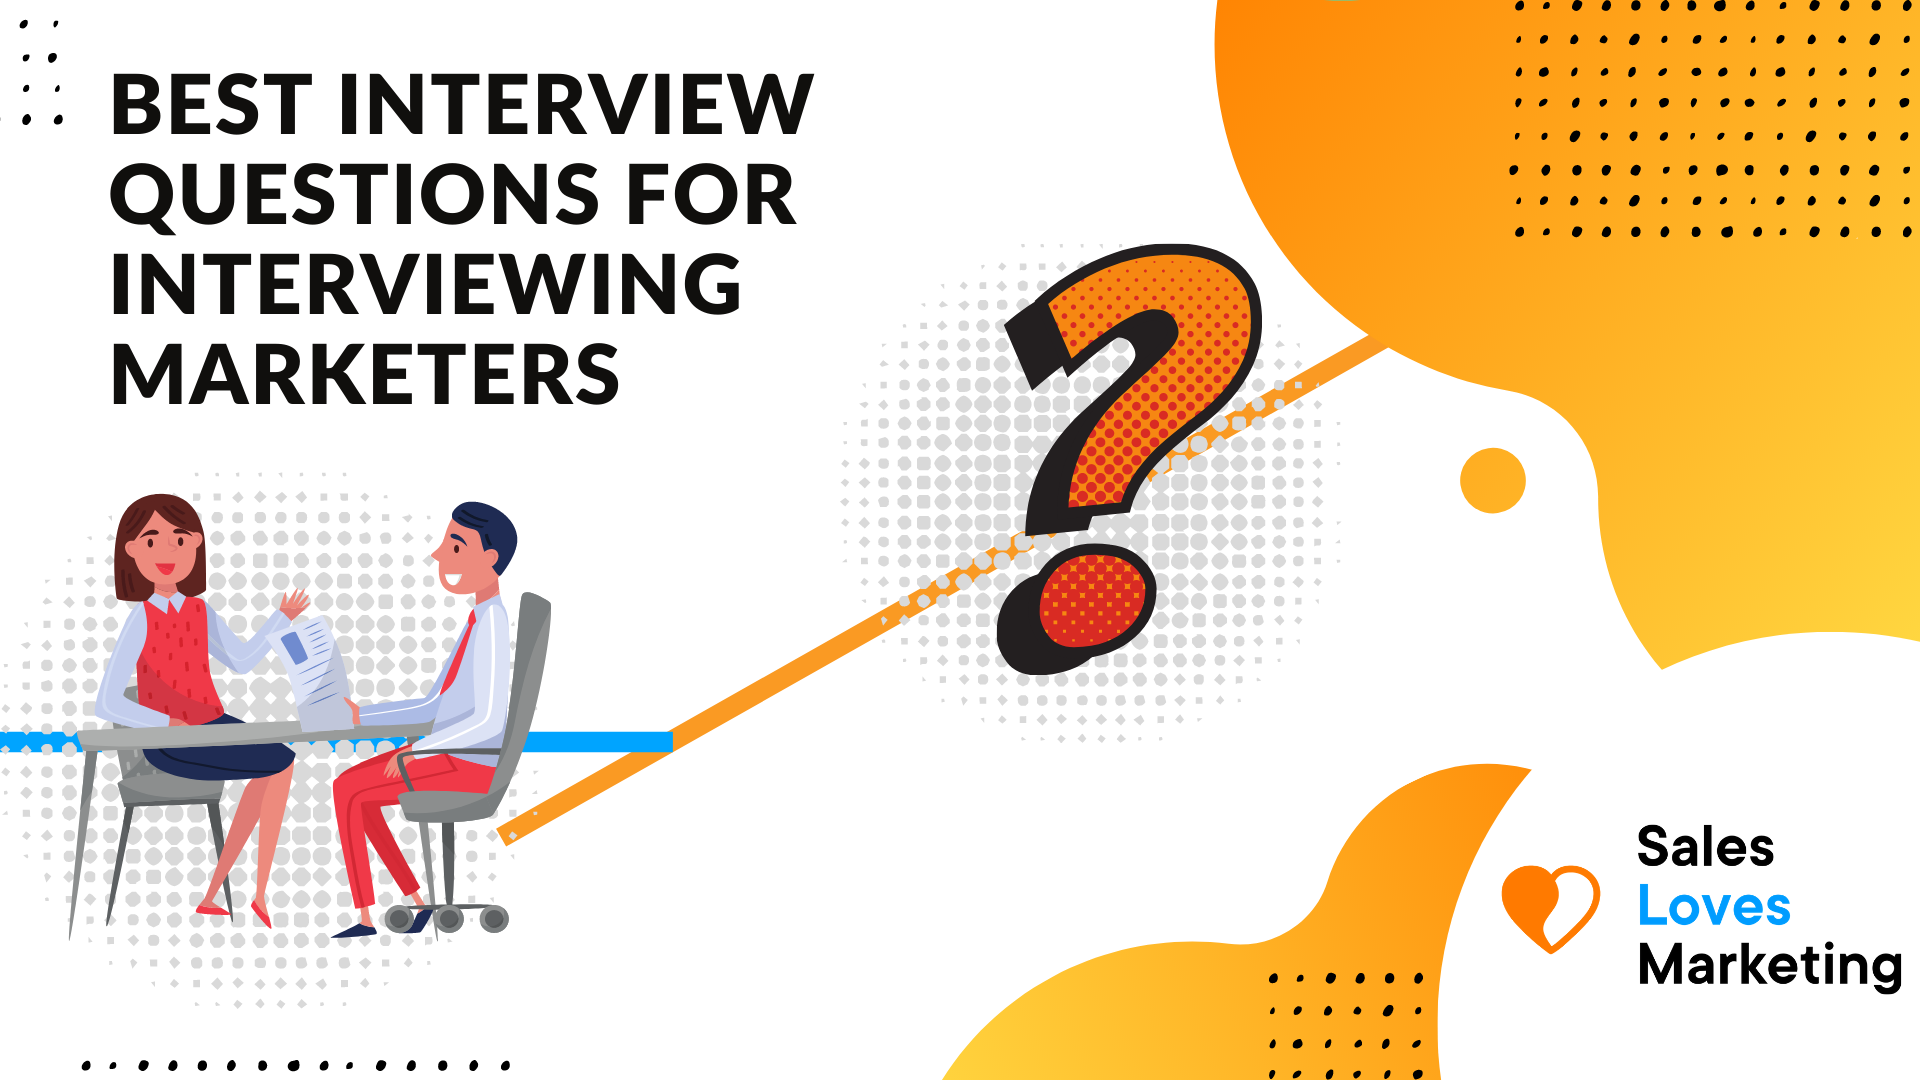 What are the best interview questions for interview marketers?